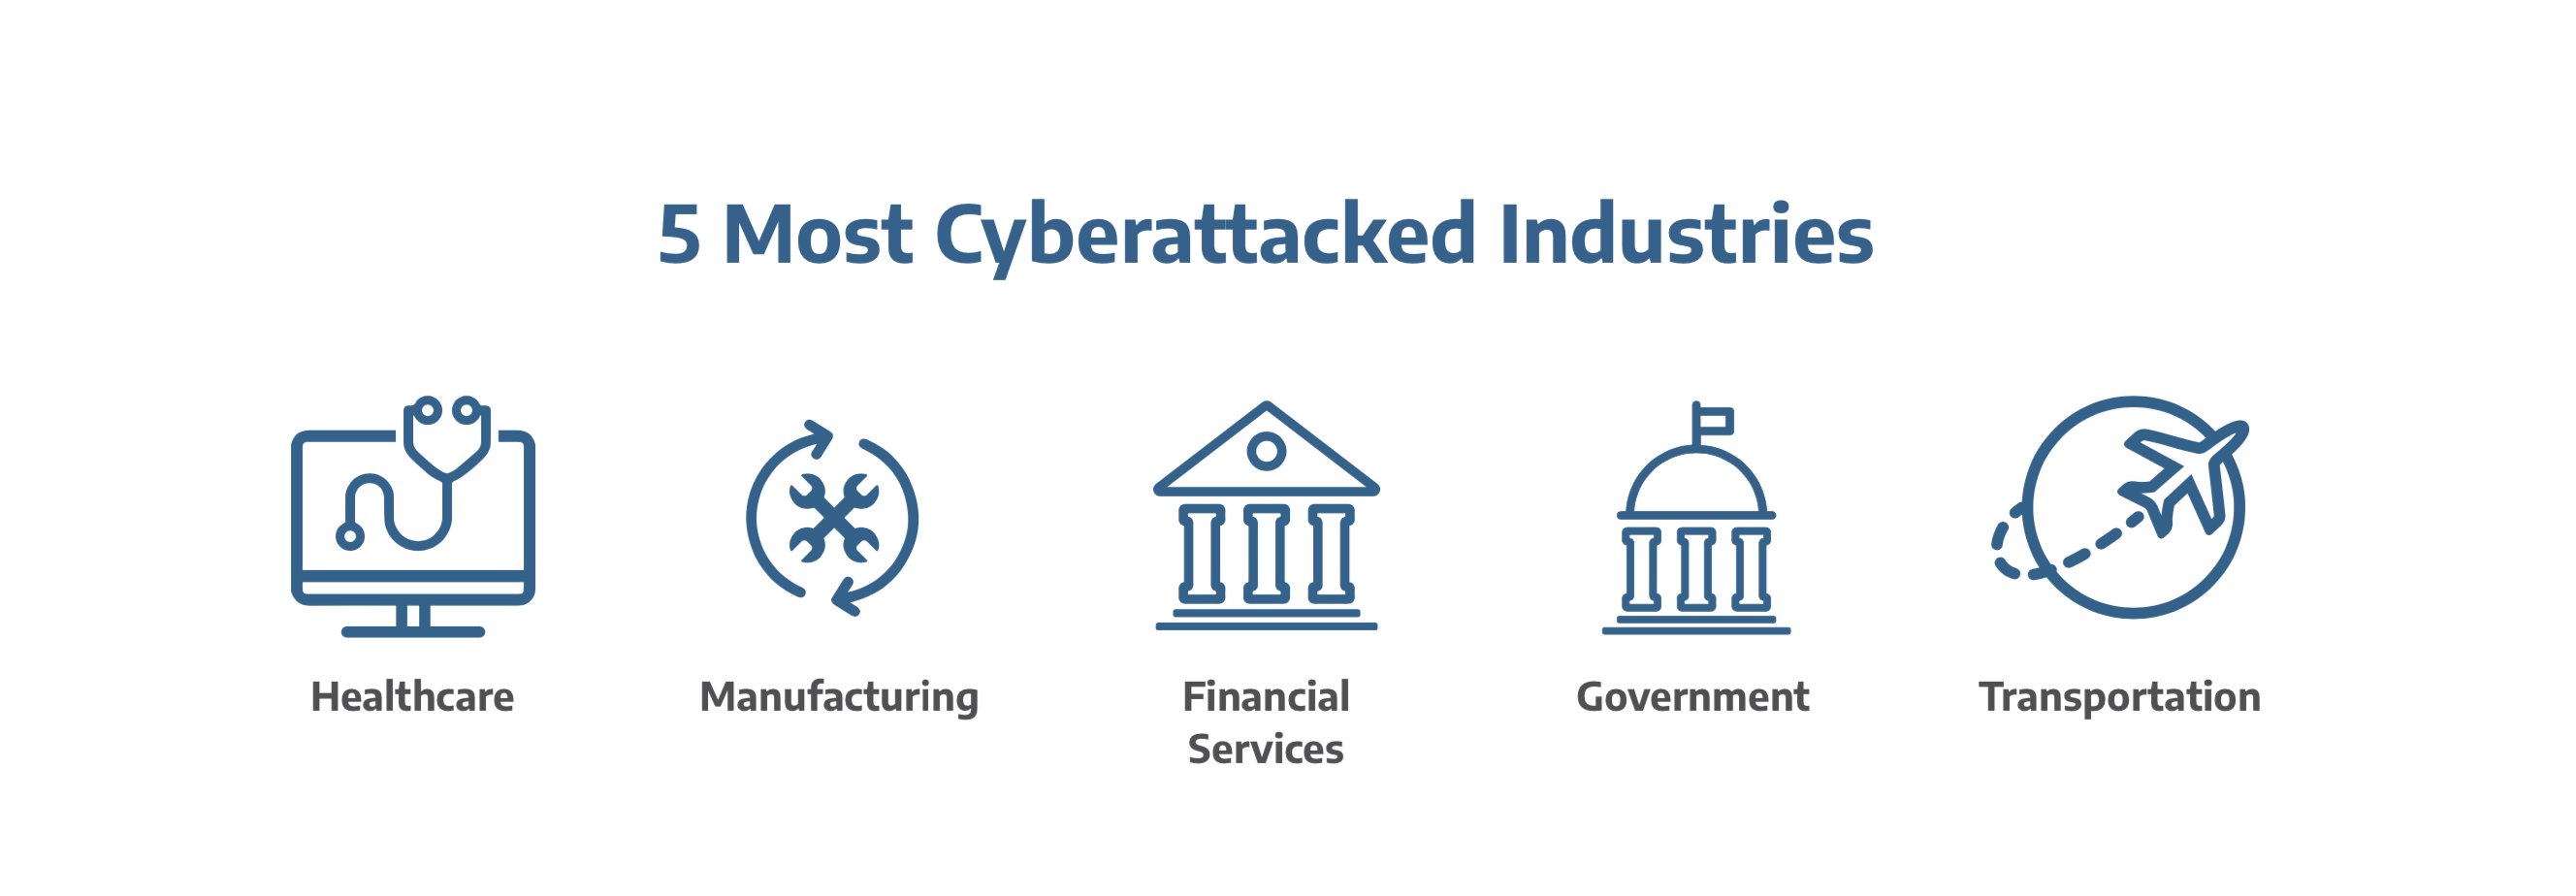 "Text of ""5 Most Cyberattacked Industries"" with graphics of healthcare, manufacturing, financial services, government, and transportation"